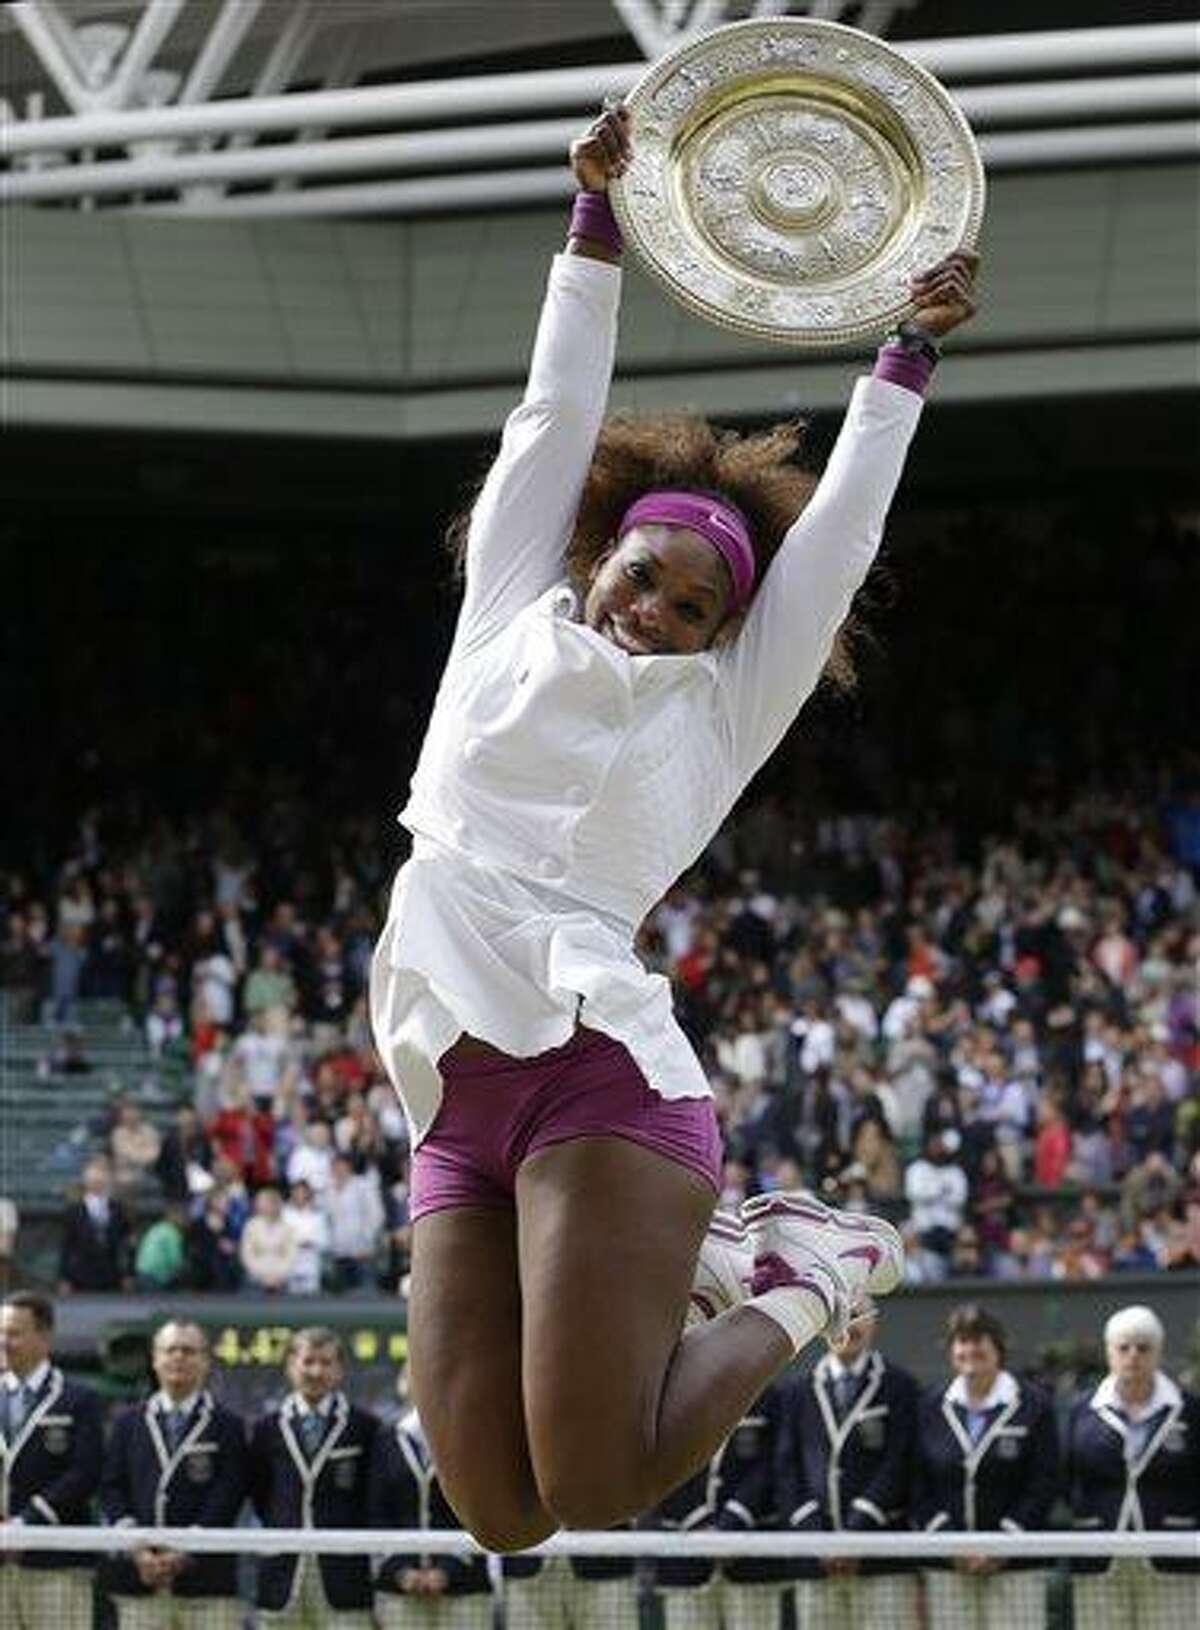 FILE - In this July 7, 2012 file photo, Serena Williams celebrates with the trophy after defeating Agnieszka Radwansk to win the women's final match at the All England Lawn Tennis Championships at Wimbledon, England. When Wimbledon starts Monday, June 24, 2013, she will be on a 31-match winning streak and an overwhelming favorite to win her second consecutive title. (AP Photo/Kirsty Wigglesworth, File)